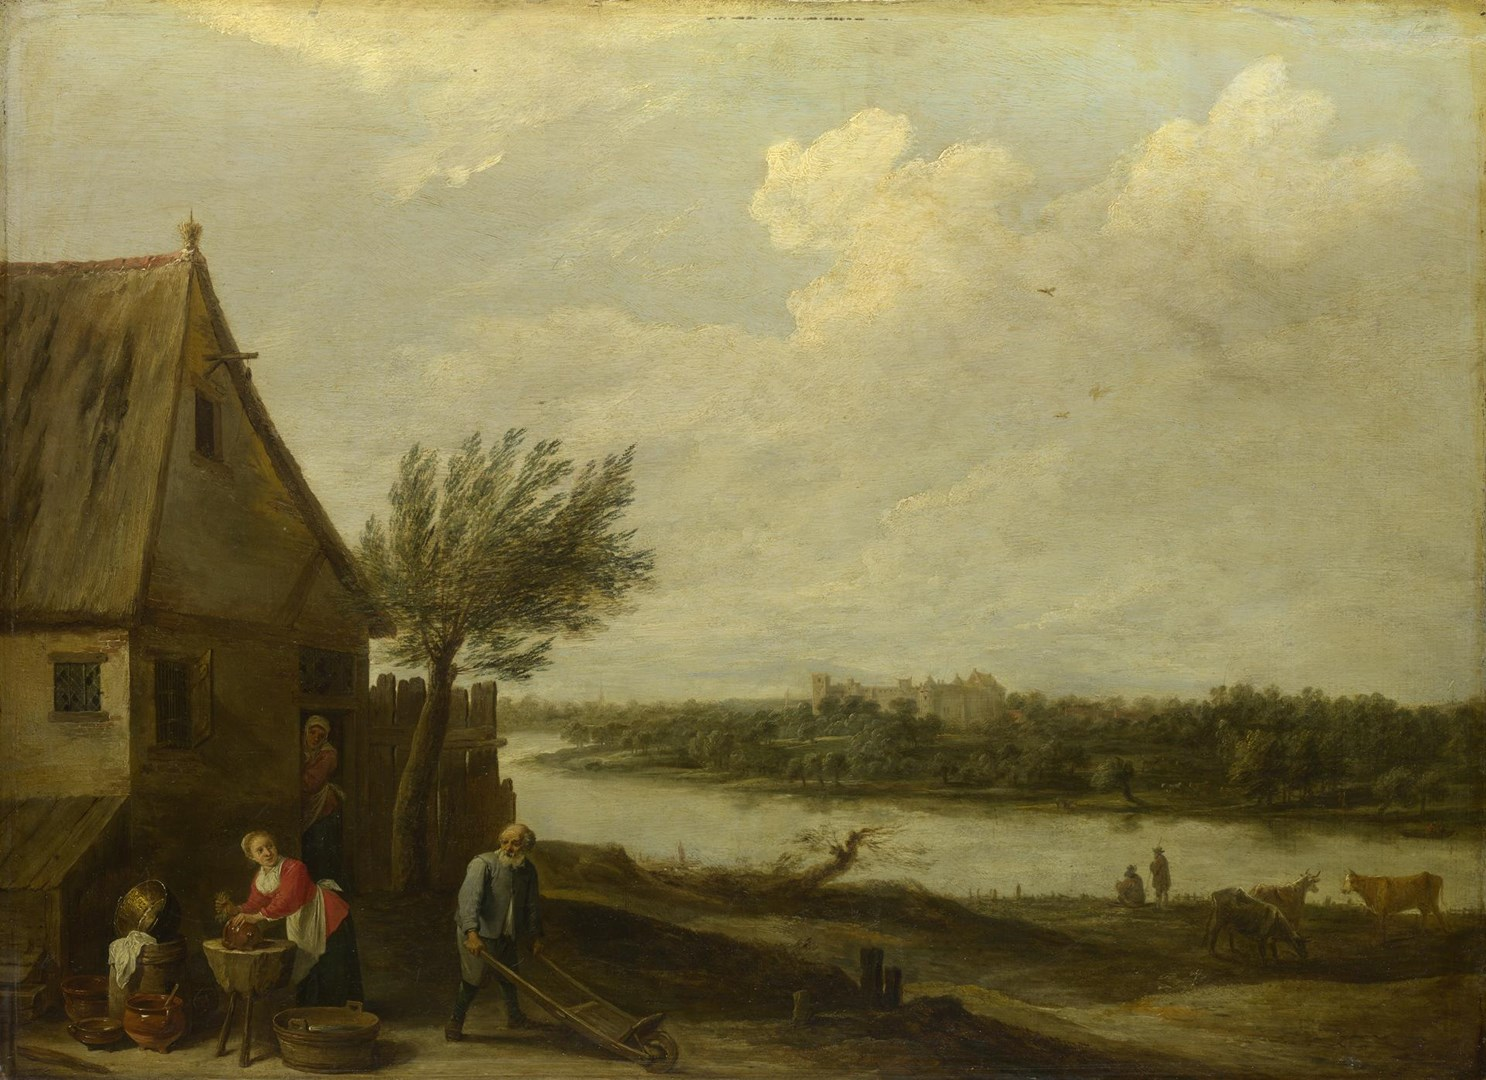 A Cottage by a River with a Distant View of a Castle by David Teniers the Younger